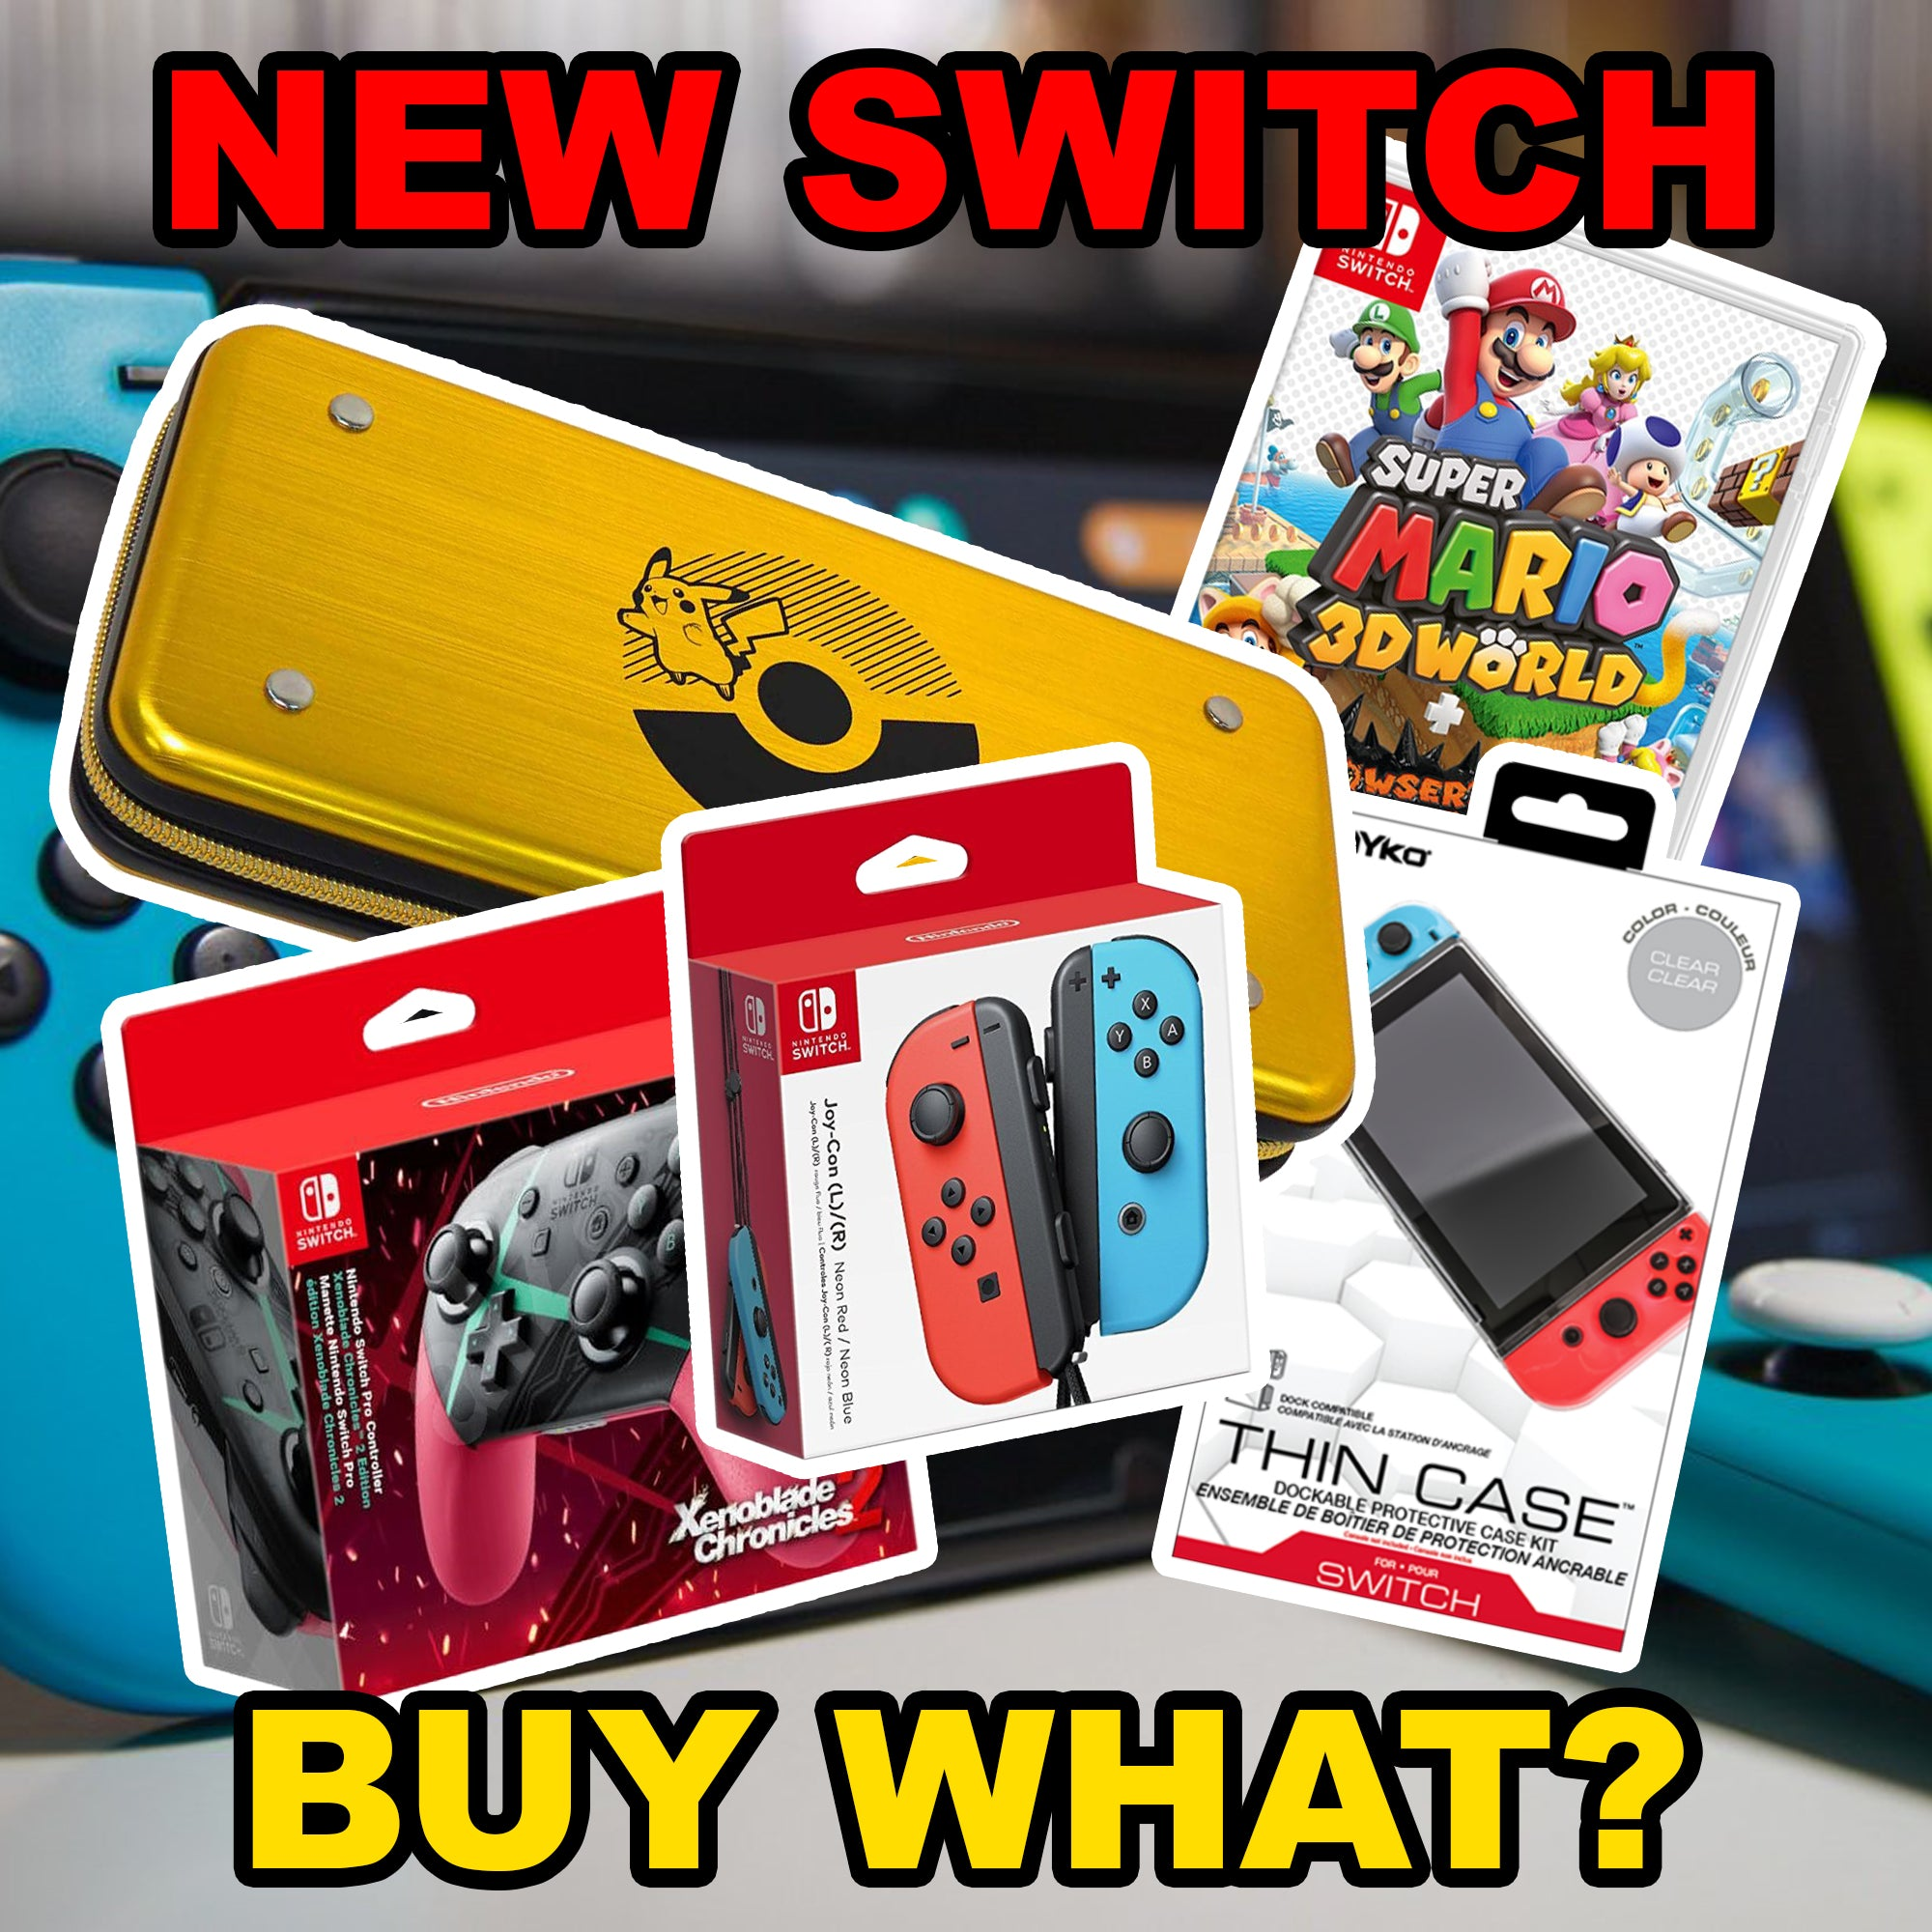 New Switch Buy What?